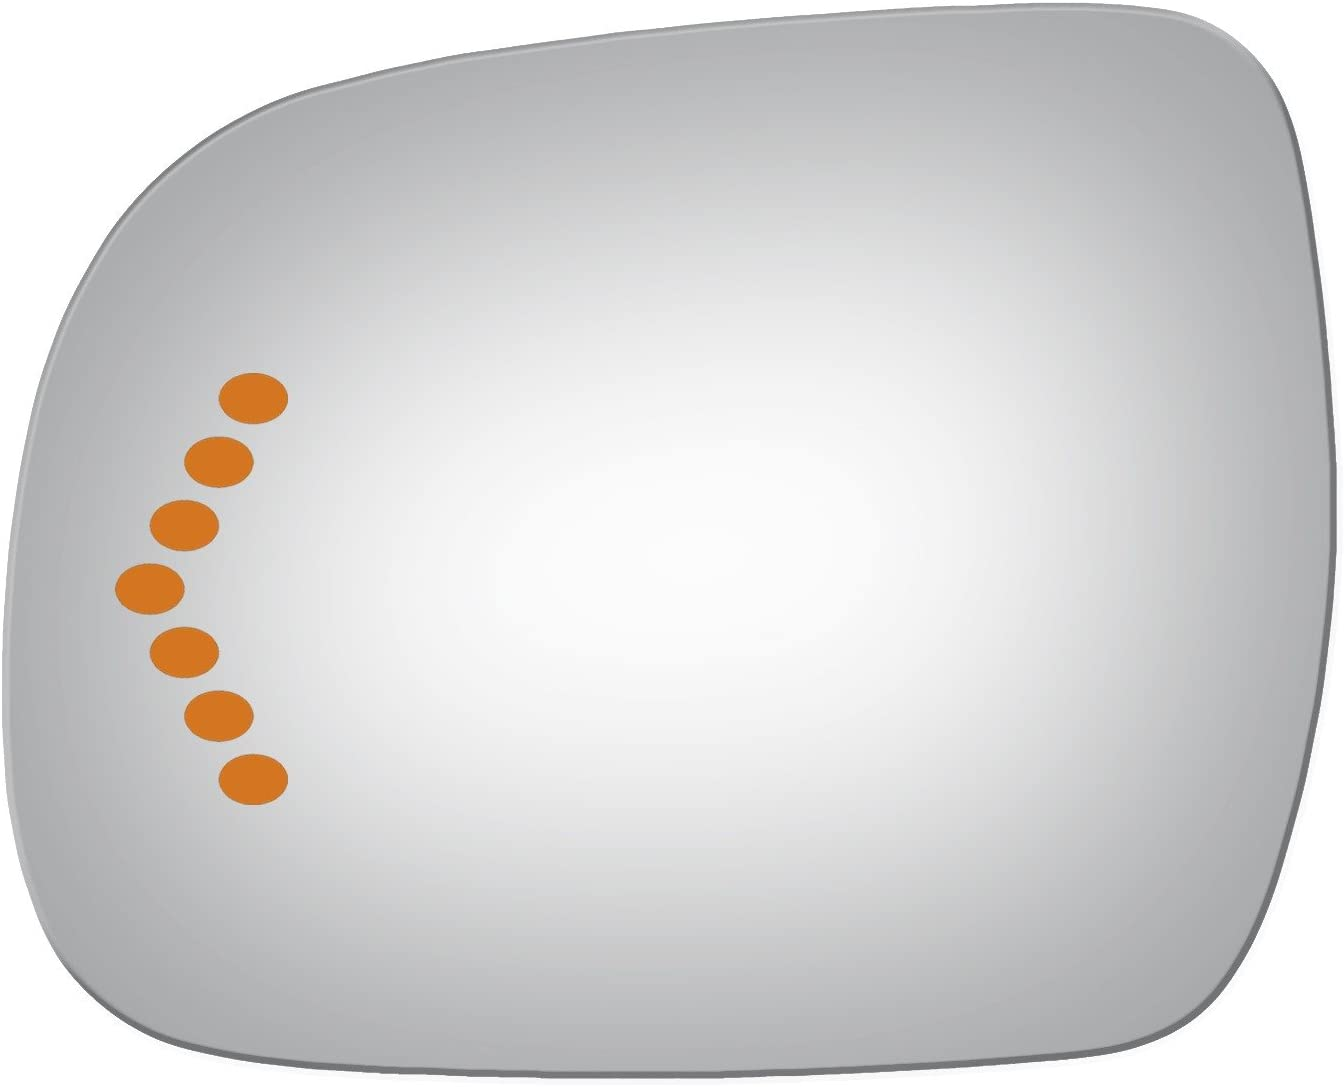 Mirrex 73794S Fits Driver Left Side Replacement for Toyota Sienna Mirror Glass Signal 2006 2007 2008 2009 2010